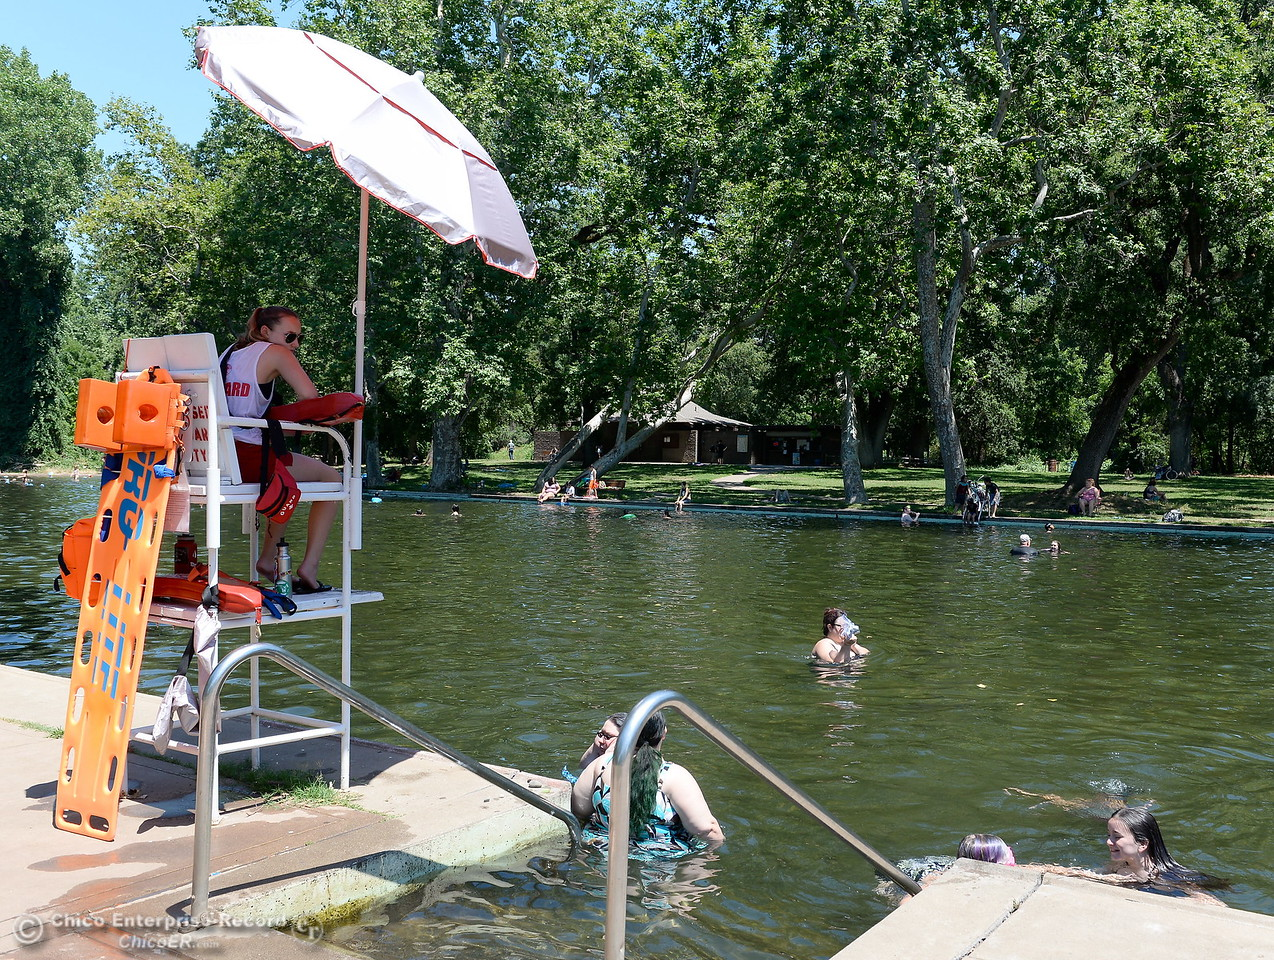 A Lifeguard keeps watch as people cool off in Sycamore Pool at the One Mile Recreation Area in Bidwell Park Tuesday June 20, 2017. (Bill Husa -- Enterprise-Record)